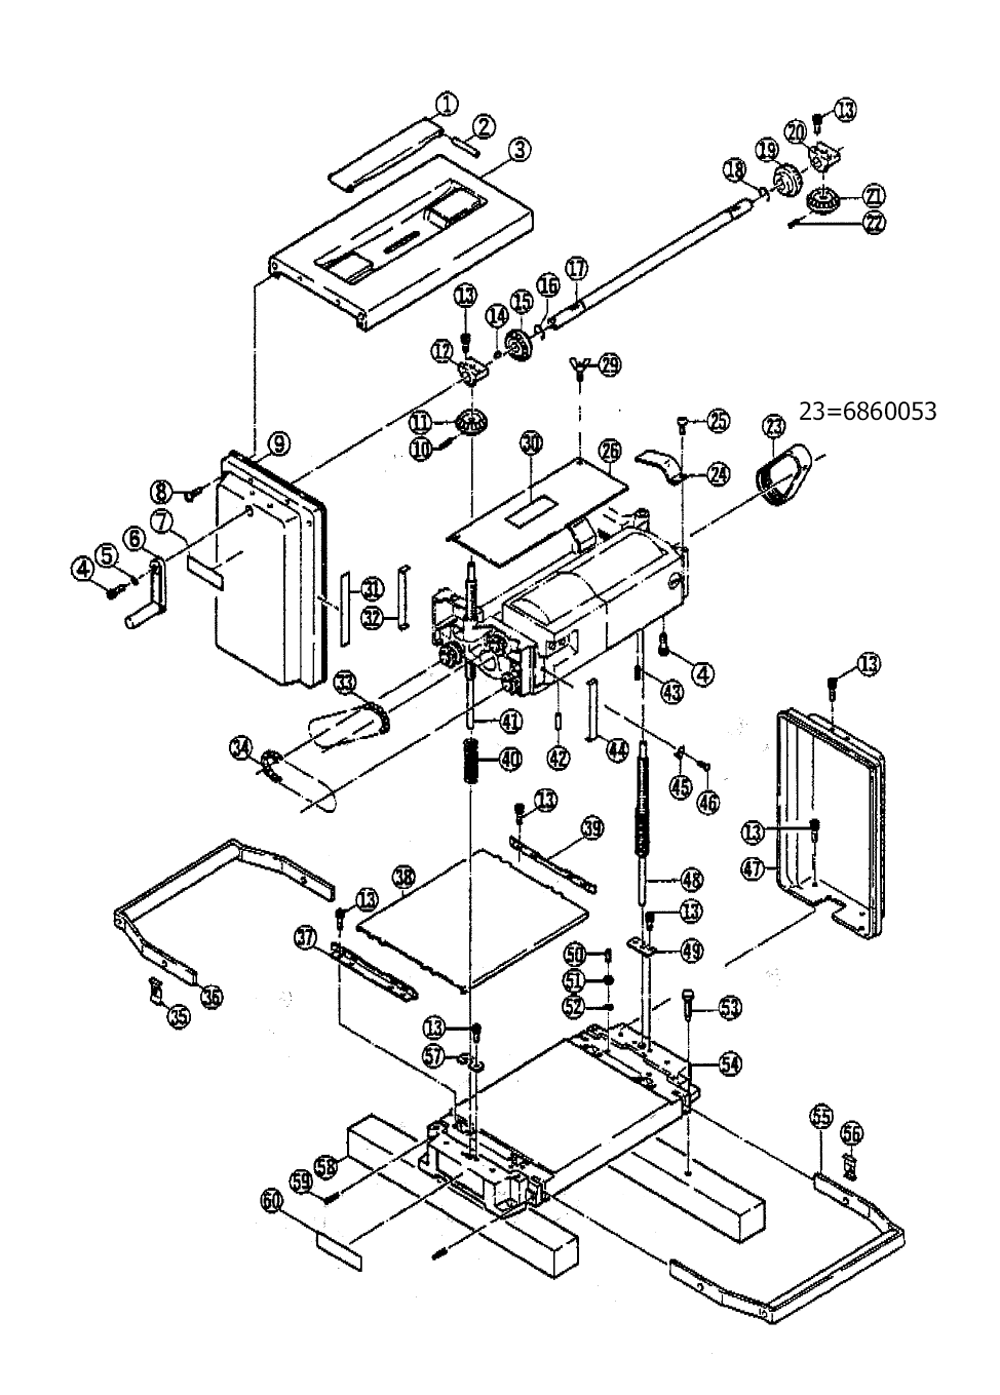 400 volt motor wiring diagram with Westinghouse Air Pressor Wiring Diagram on Mercury Wiring Diagram Honeywell Thermostat T874r1152 M9301 together with Mortex Furnace Wiring Diagram together with Wiring Diagram For Squirrel Cage Fan Motor furthermore Insta Trim Boat Leveler Replacement Parts P 91002346 also Dc Motor Counter.